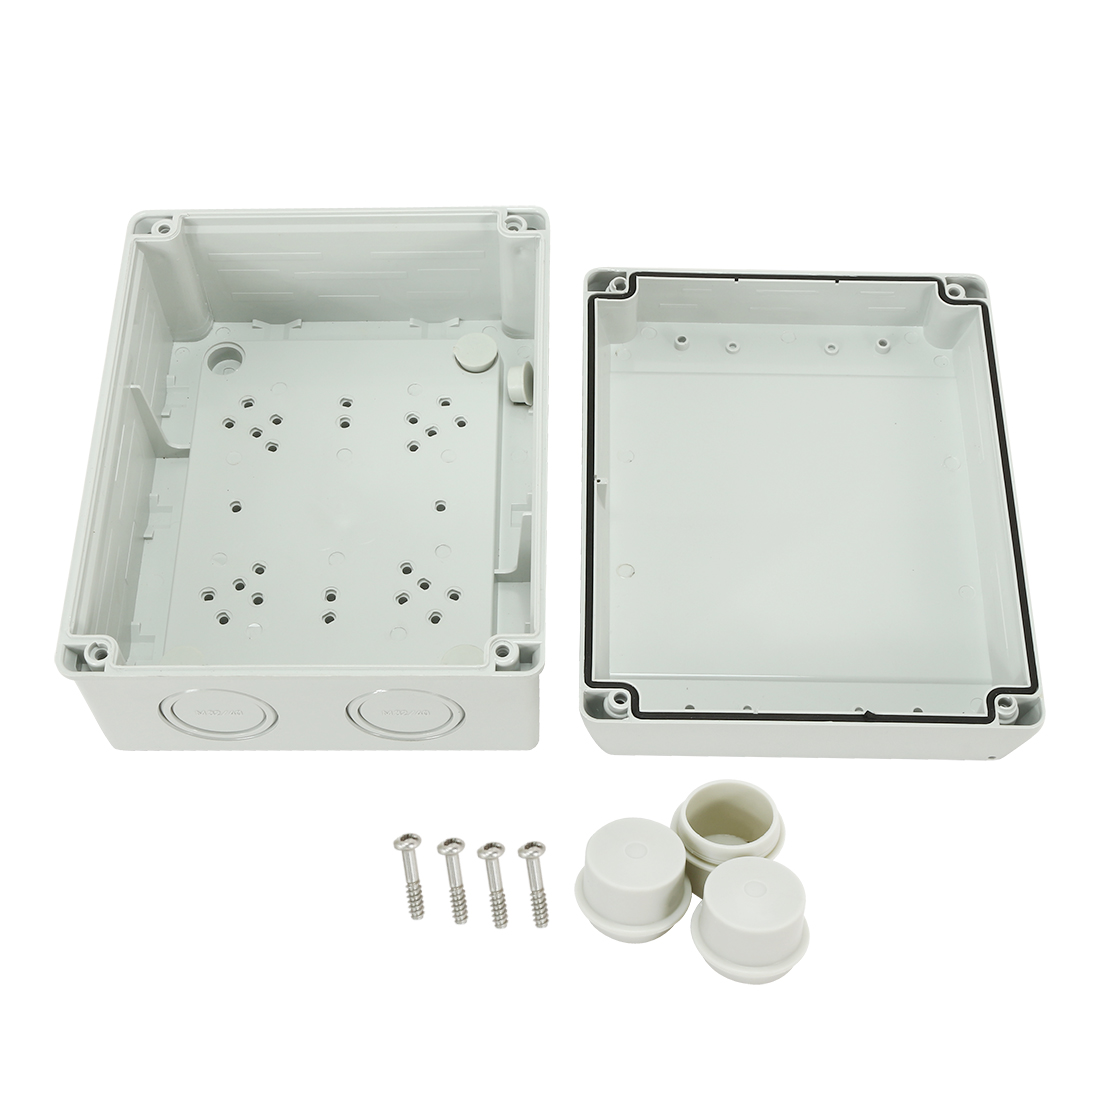 """7.9""""x6.3""""x3.9"""" (200mmx160mmx98mm) ABS Flame Retardant IP66/IP55 Junction Box Universal Project Enclosure"""